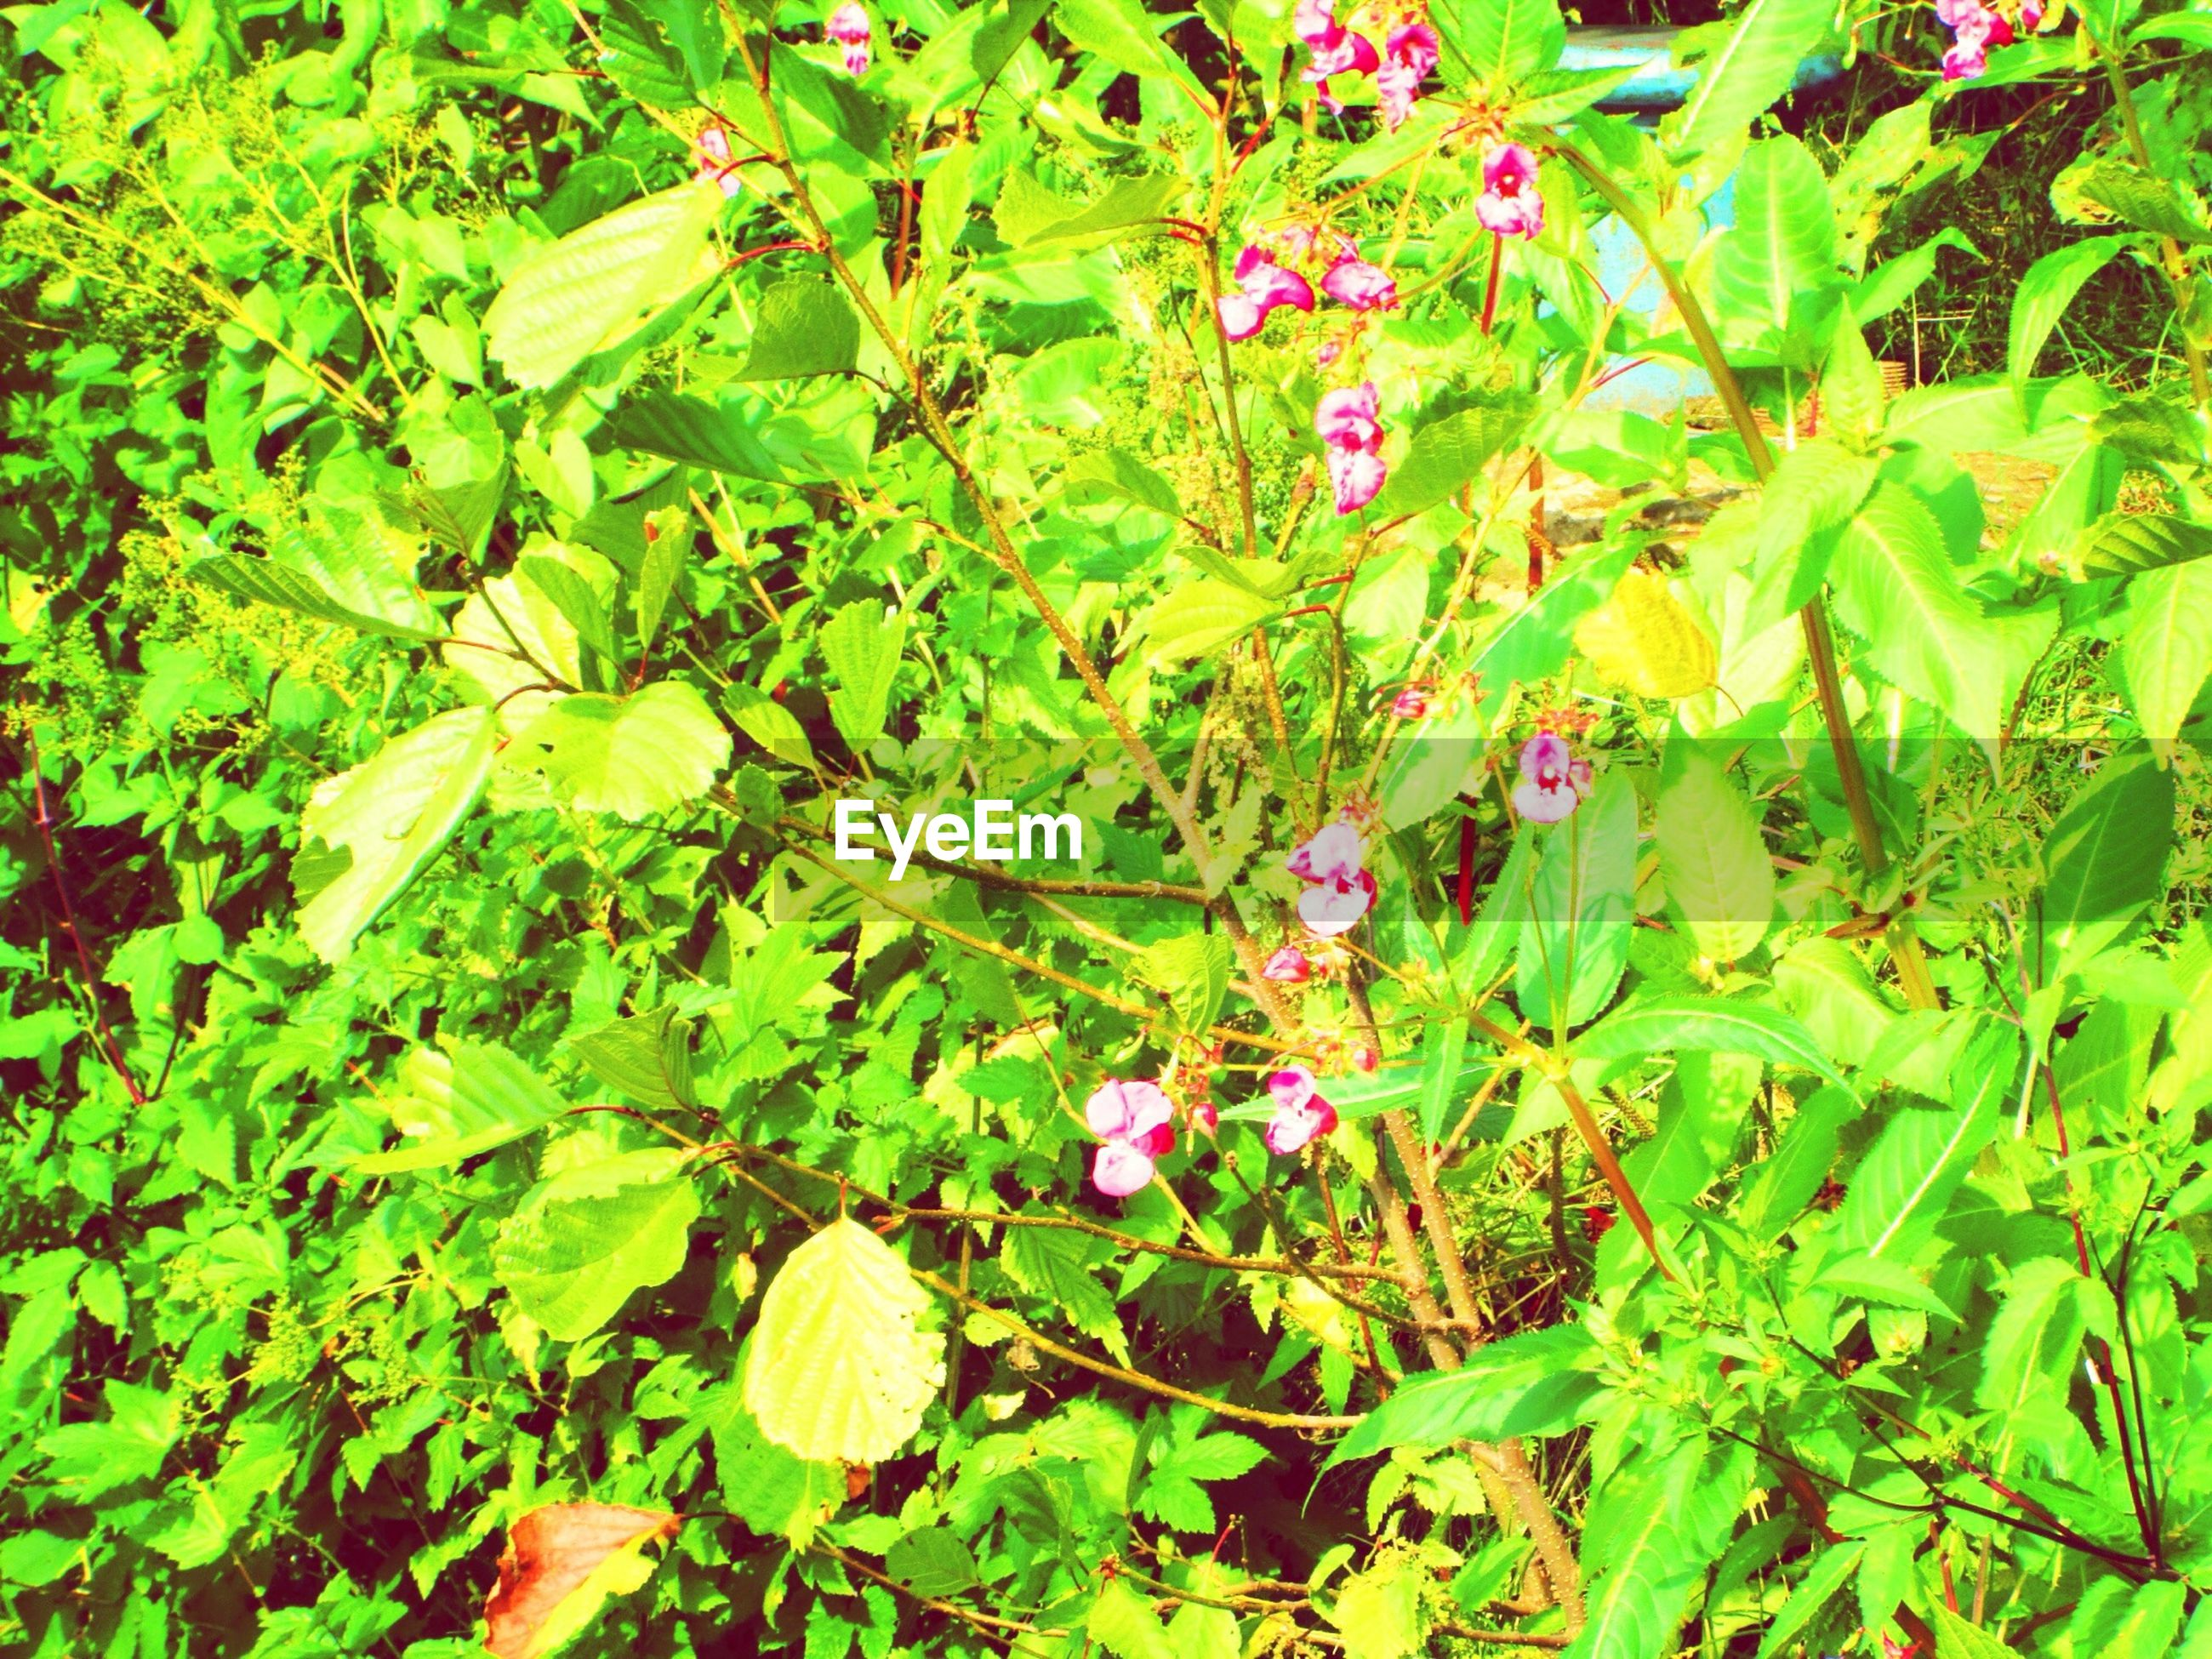 growth, leaf, green color, plant, freshness, nature, flower, beauty in nature, growing, green, fragility, high angle view, day, outdoors, lush foliage, close-up, no people, tranquility, field, sunlight